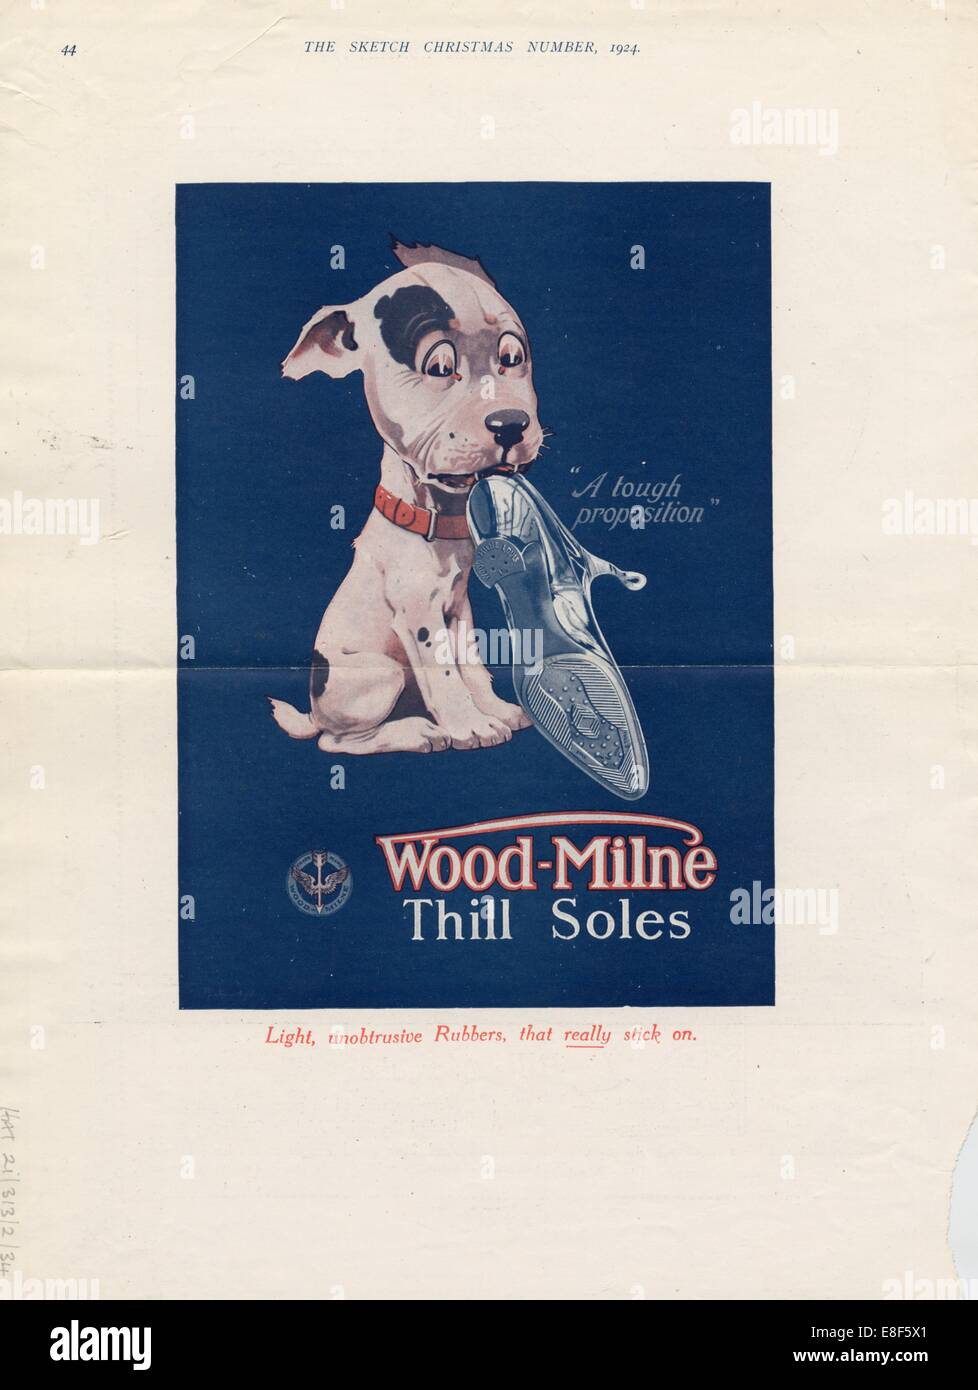 Wood-Milne Thill Rubber Soles, 1924. - Stock Image